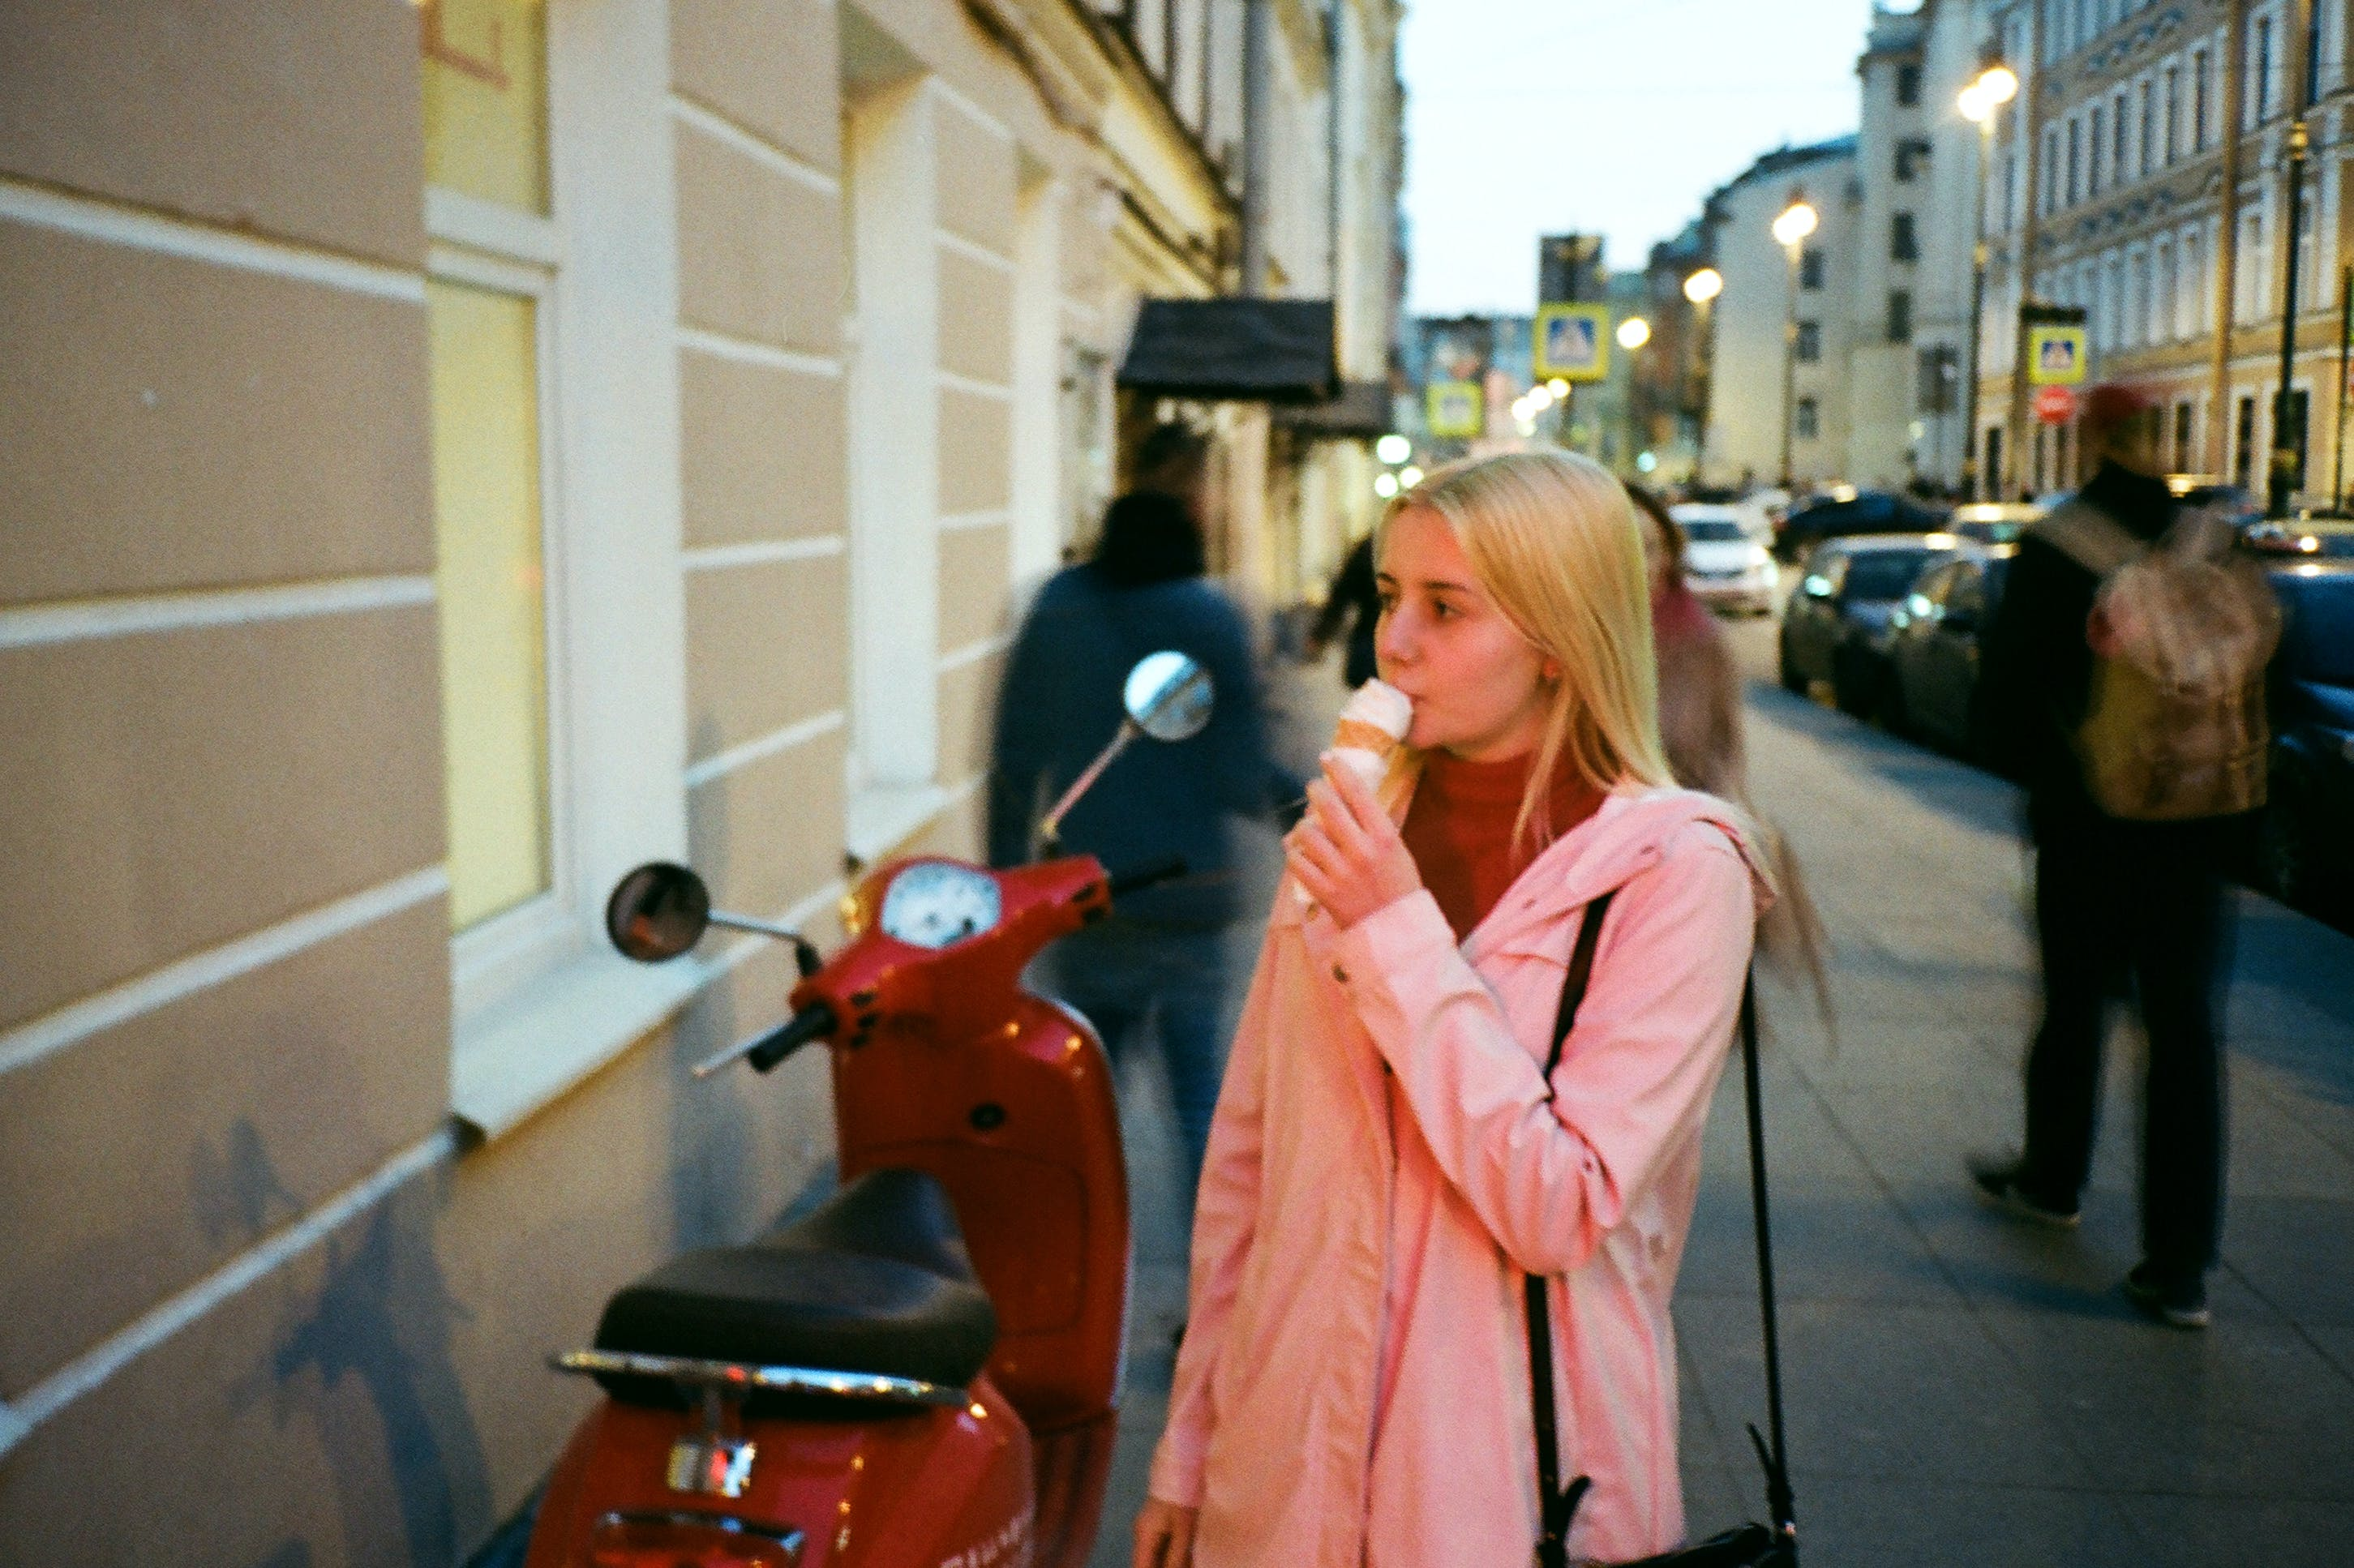 Photo of Woman Eating Ice Cream Near Red Motor Scooter by Side Walk